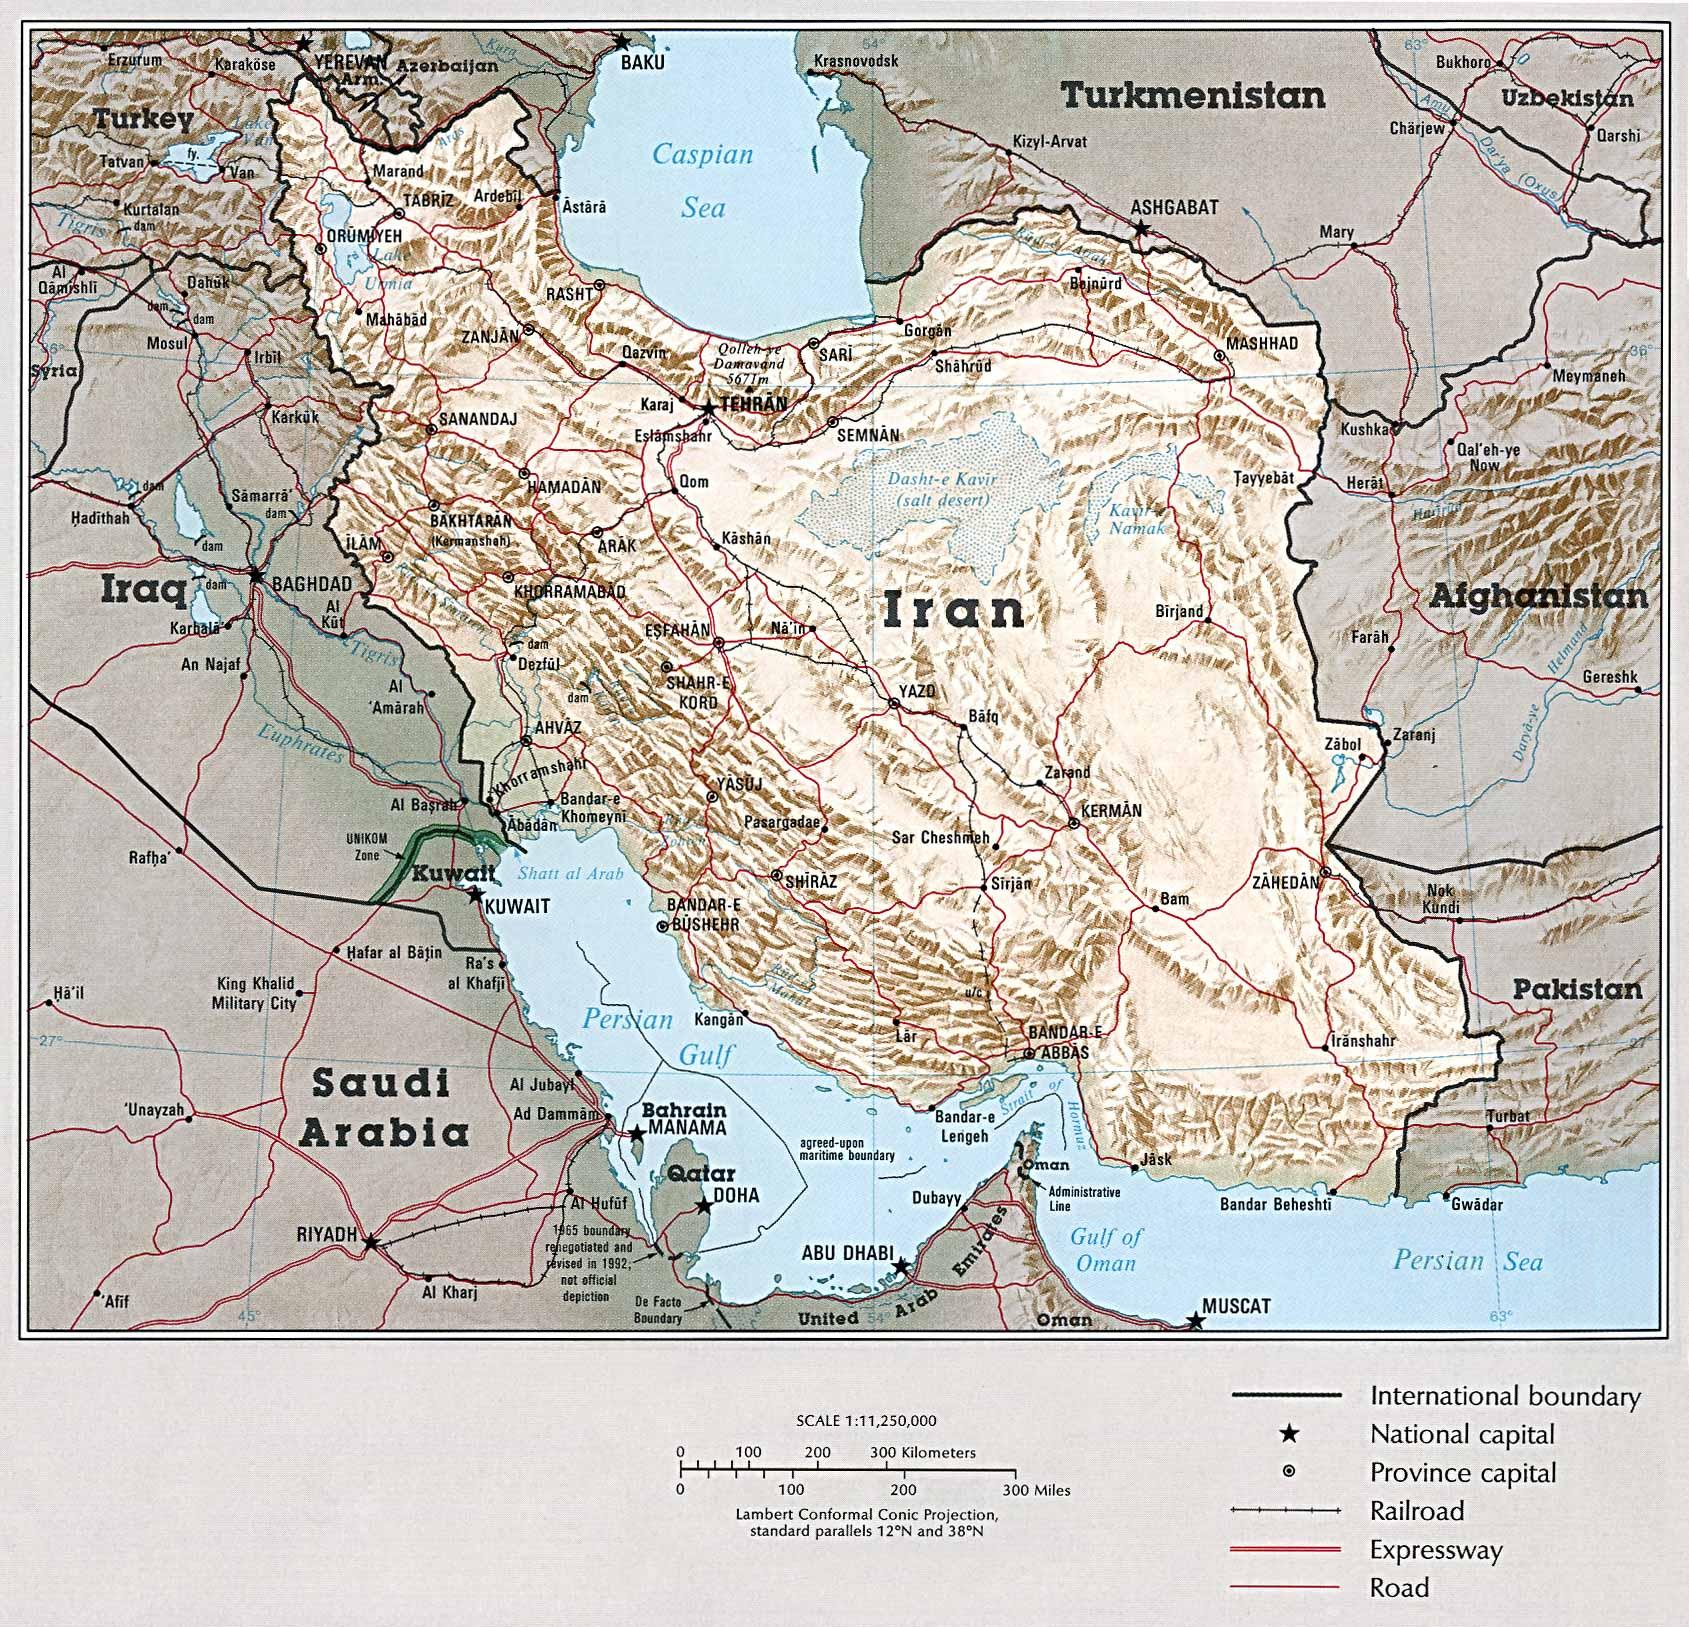 Maps: Ancient Iran Through Ages (726BCE to CE640)